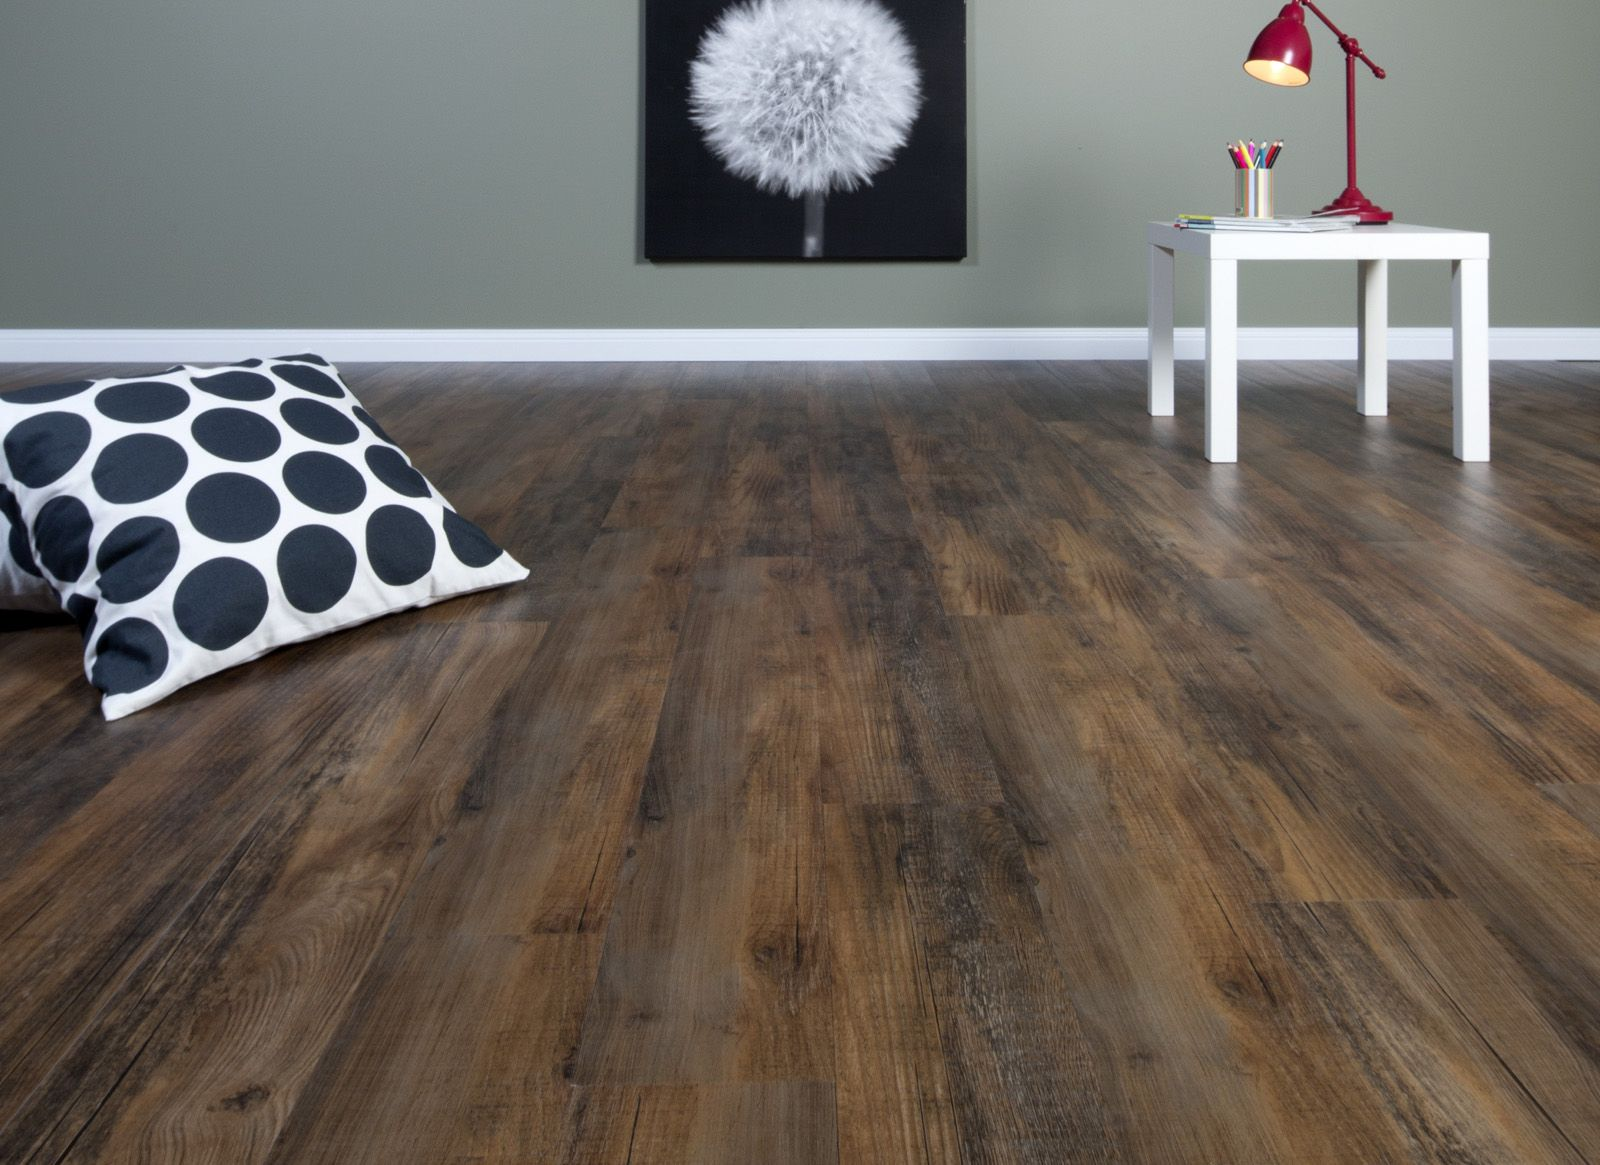 What Is The Price Of Hdb 5 Room Flooring In Singapore Vinyl Wood